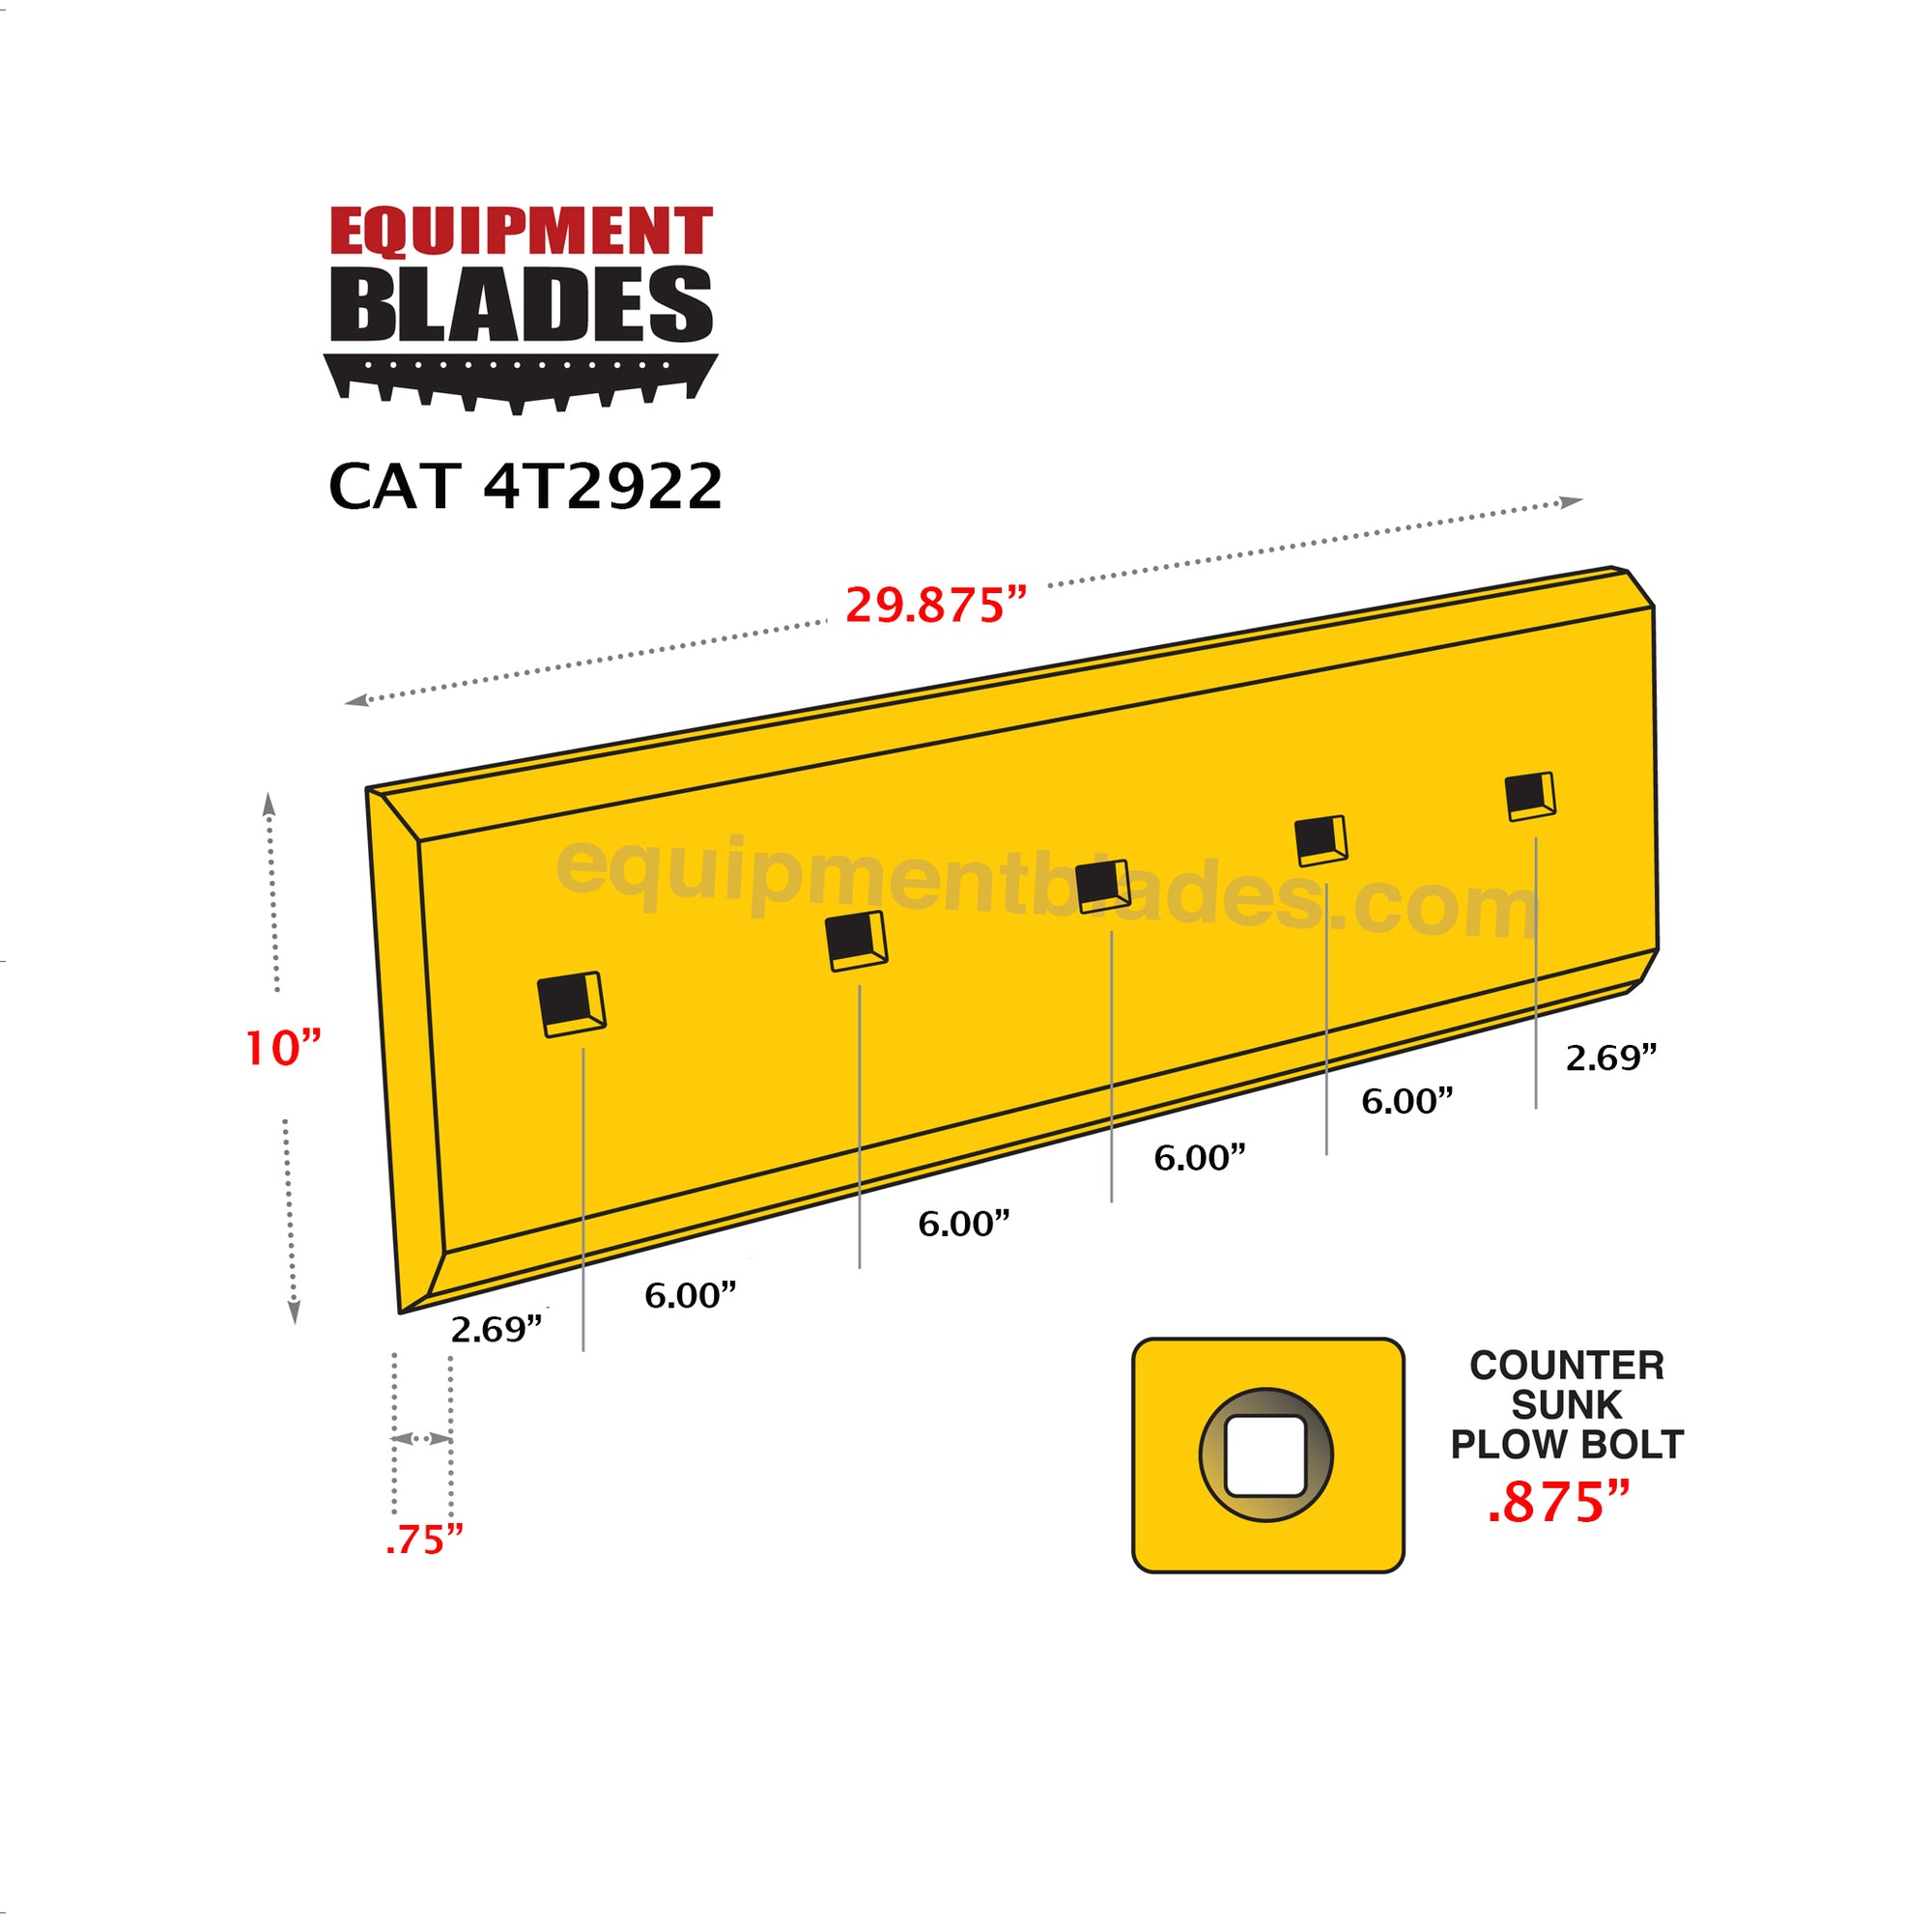 CAT 4T2922-Bull Dozer blades-Equipment Blades Inc-Equipment Blades Inc